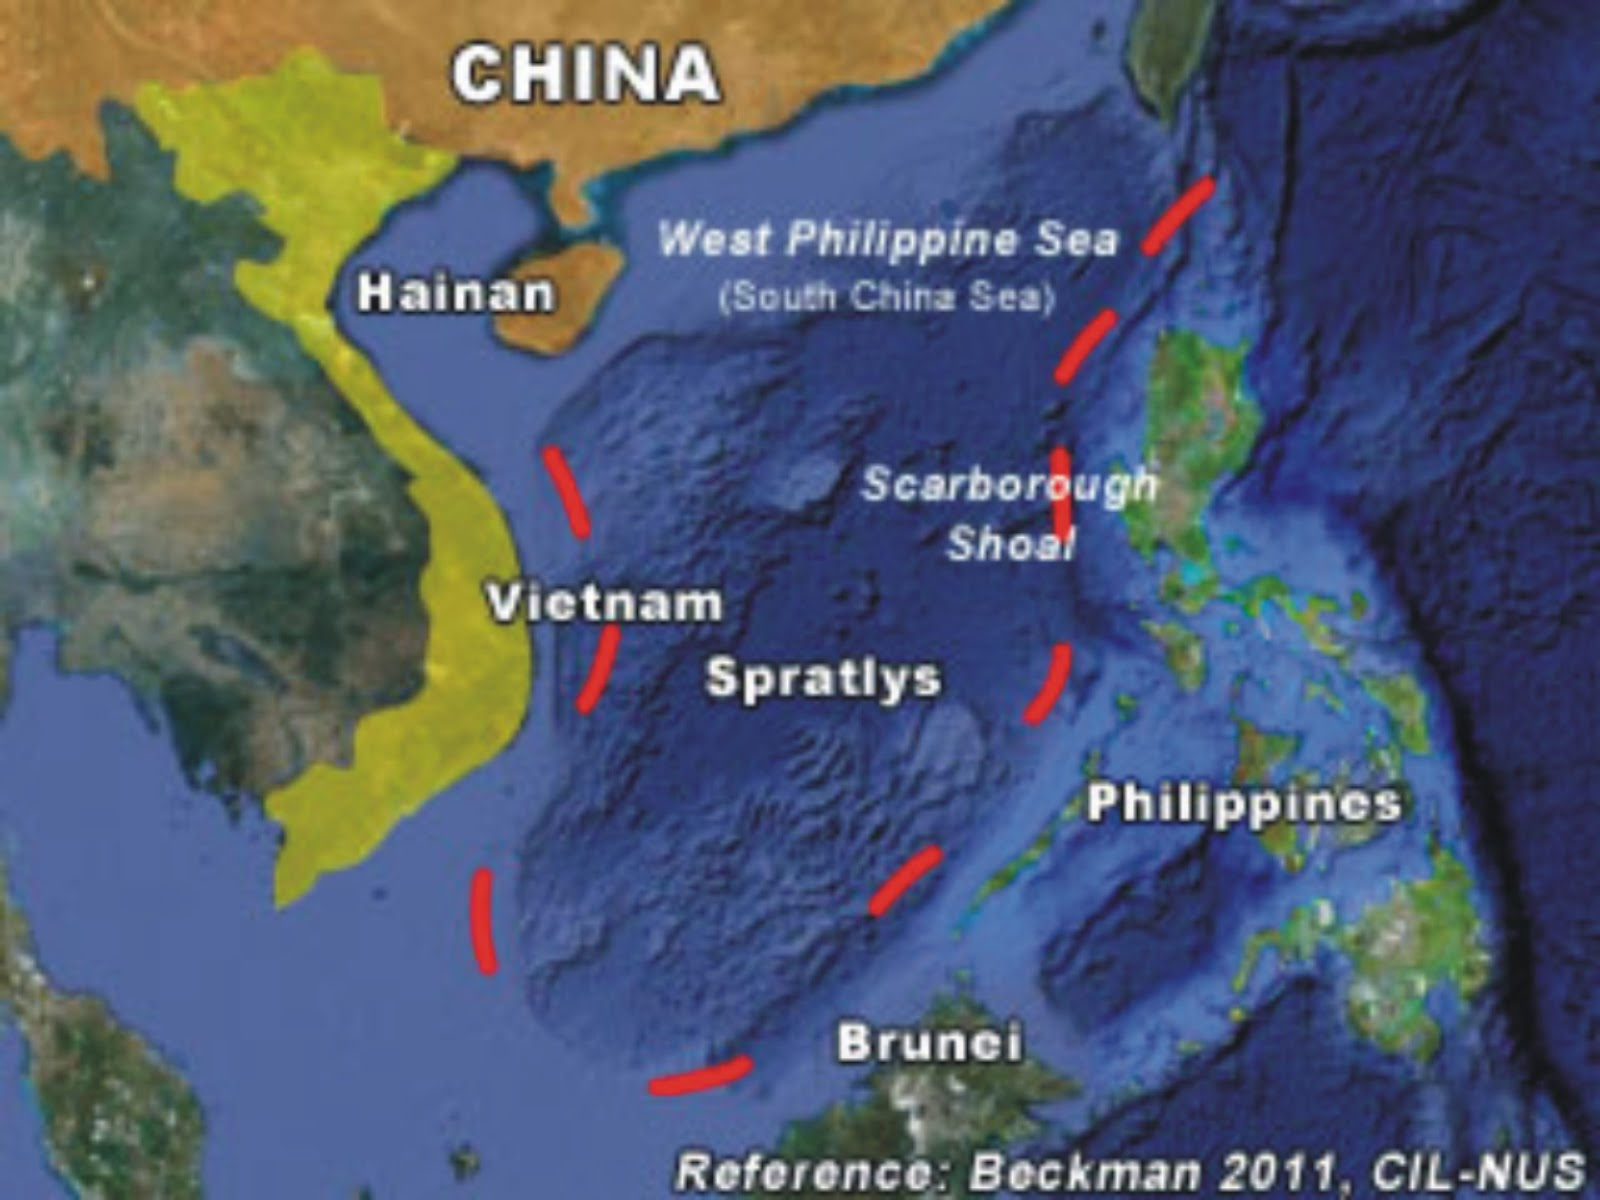 We Speak the Truth: Bajo de Masinloc: Our Shoal, Our ... on south korea map, bataan map, pratas island map, south china sea, north korea map, swains island map, machias seal island map, nine-dotted line, pratas islands, spratly islands, north borneo map, bangladesh map, china map, south china sea islands, spratly islands dispute, cebu map, philippines map, masbate map, subic bay map, yongxing island map, paracel islands, macclesfield bank, senkaku islands dispute, senkaku islands, hans island map, mayotte map, itu aba island map, chagos archipelago map, mindoro map, matsu islands map,